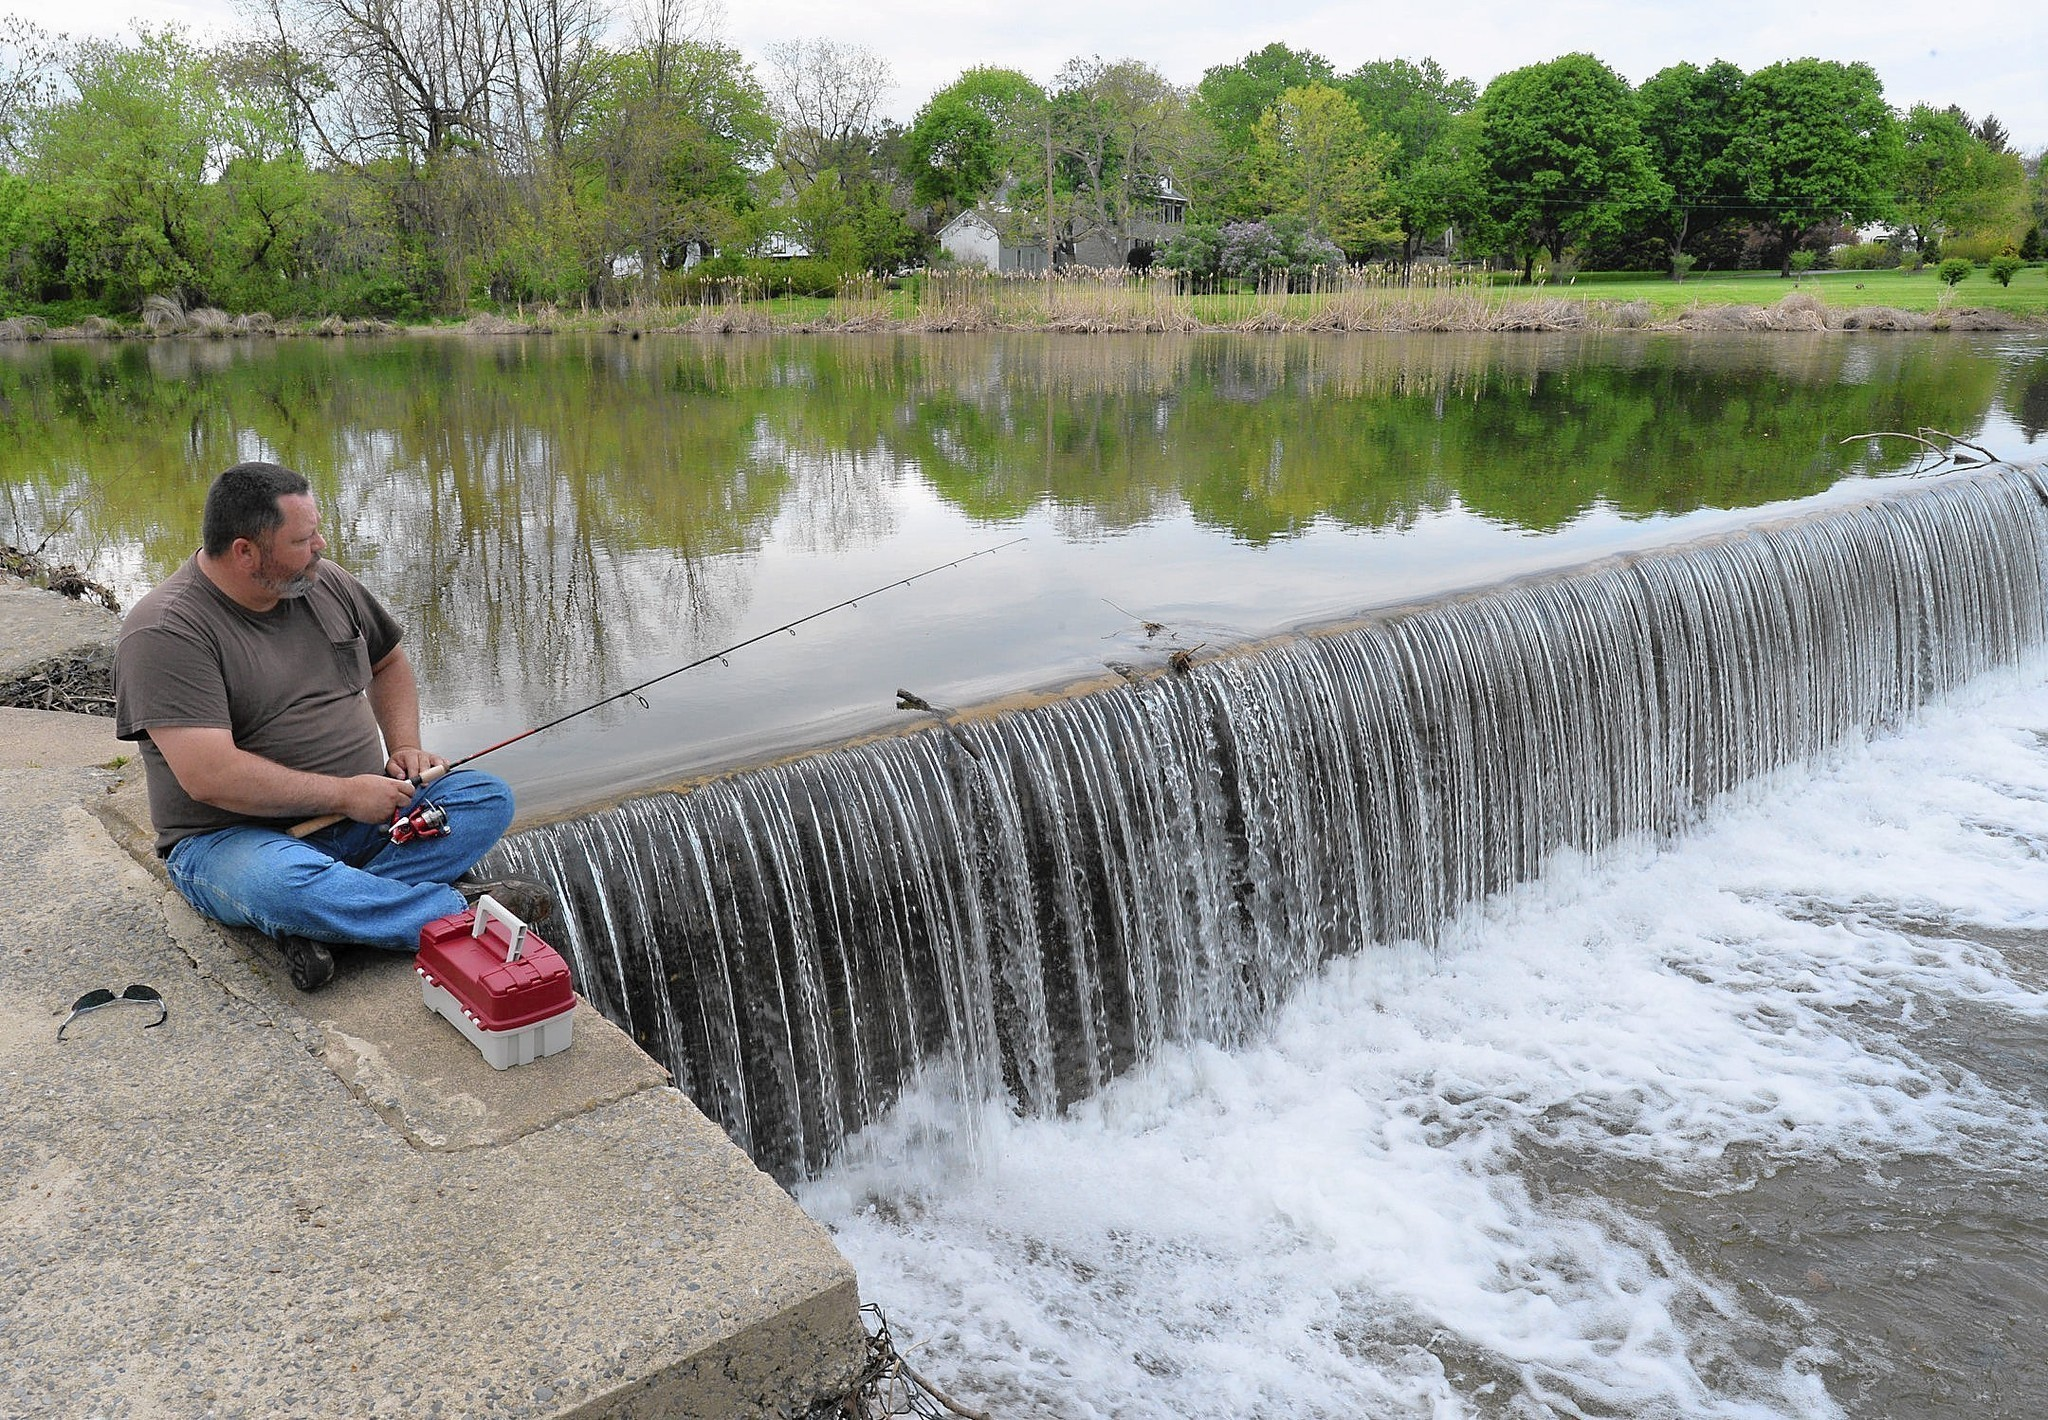 Labor day is fish for 1 in pennsylvania allentown for Pa fish records